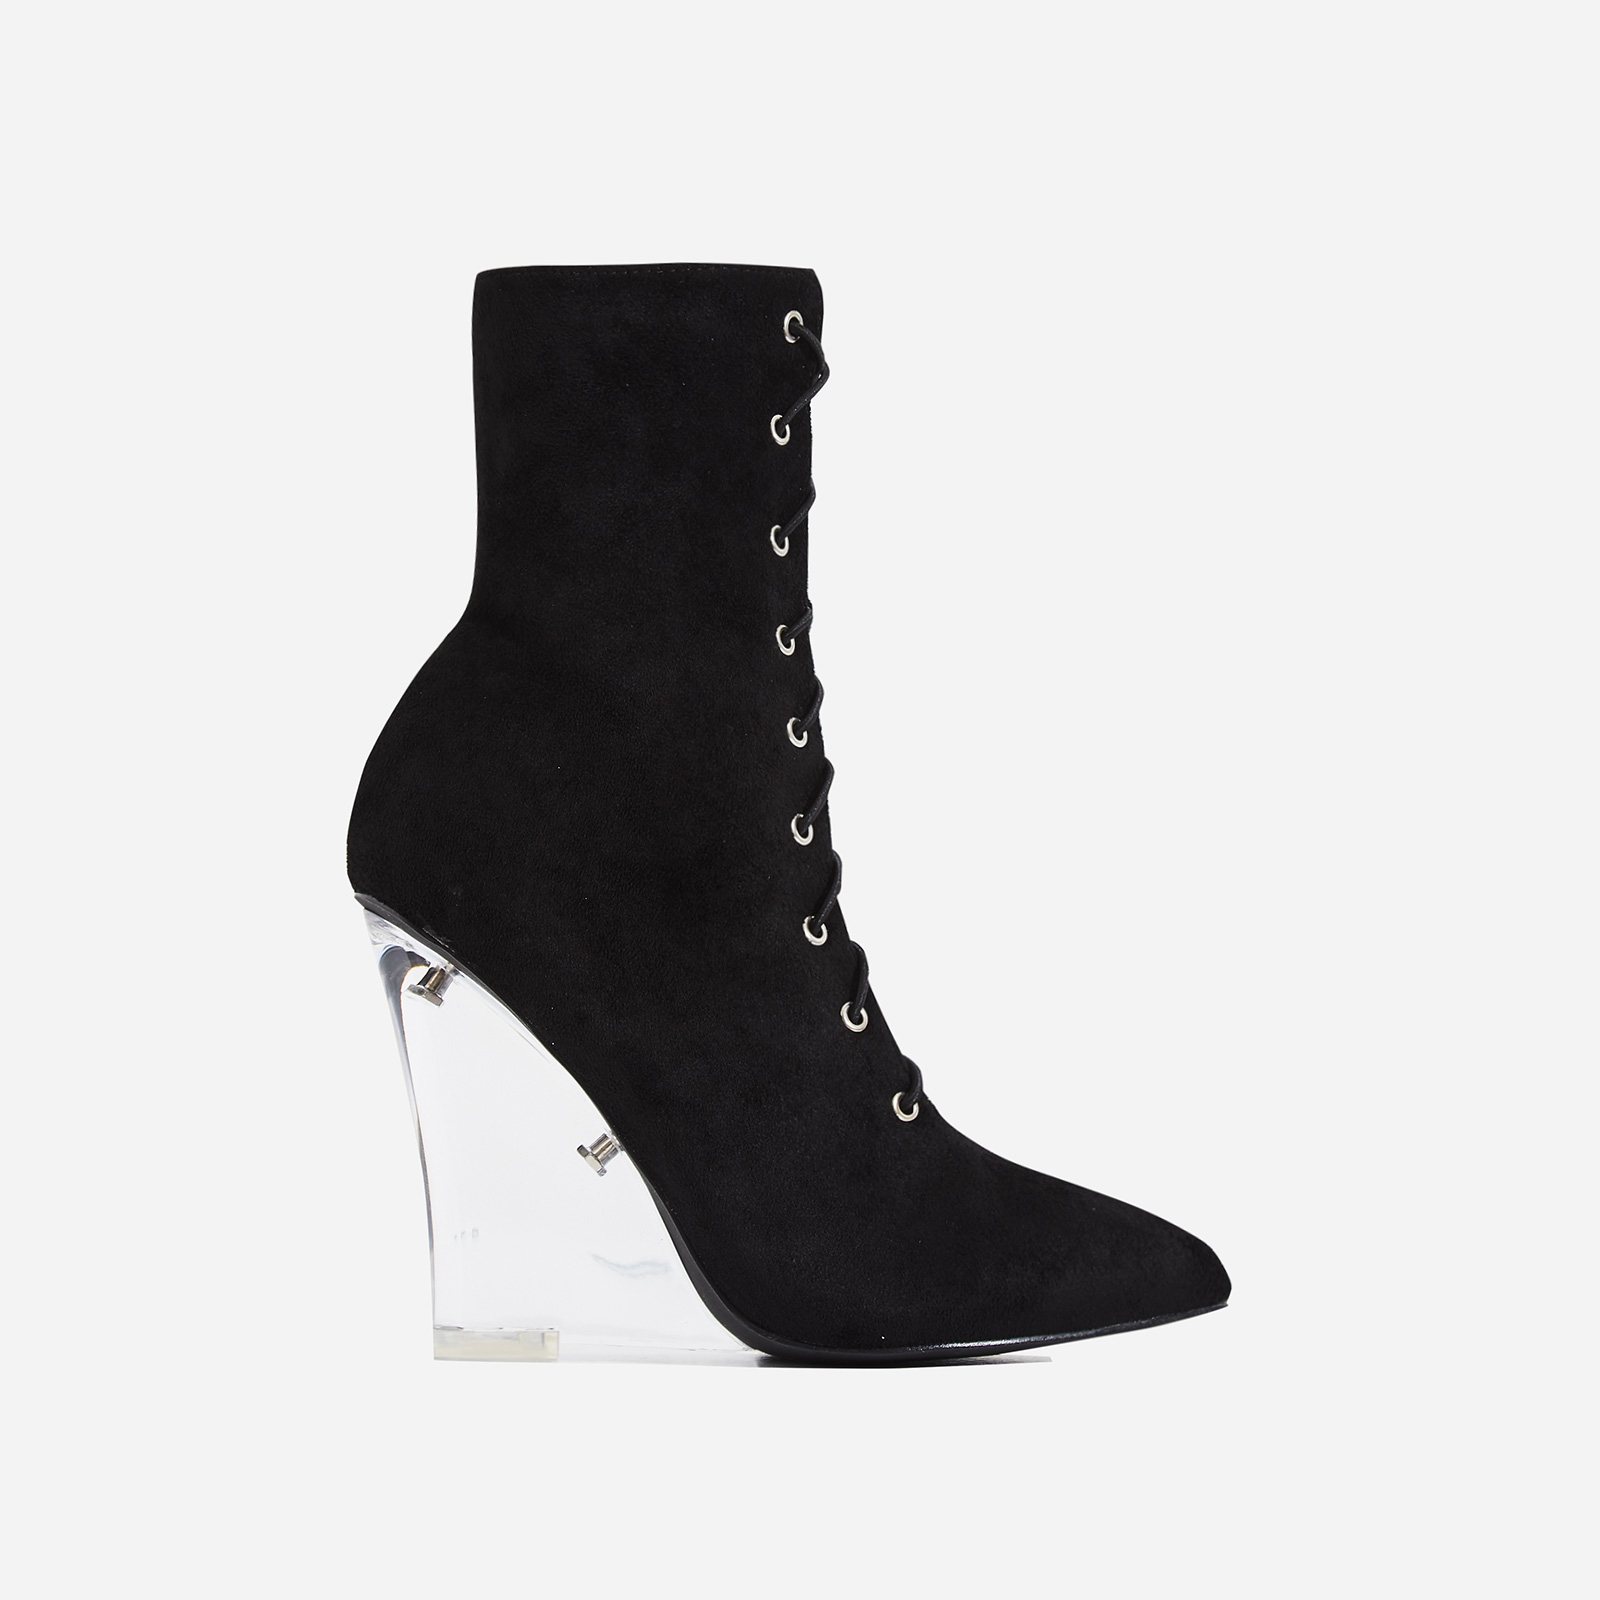 Turnaround Perspex Wedge Lace Up Ankle Boot In Black Faux Suede